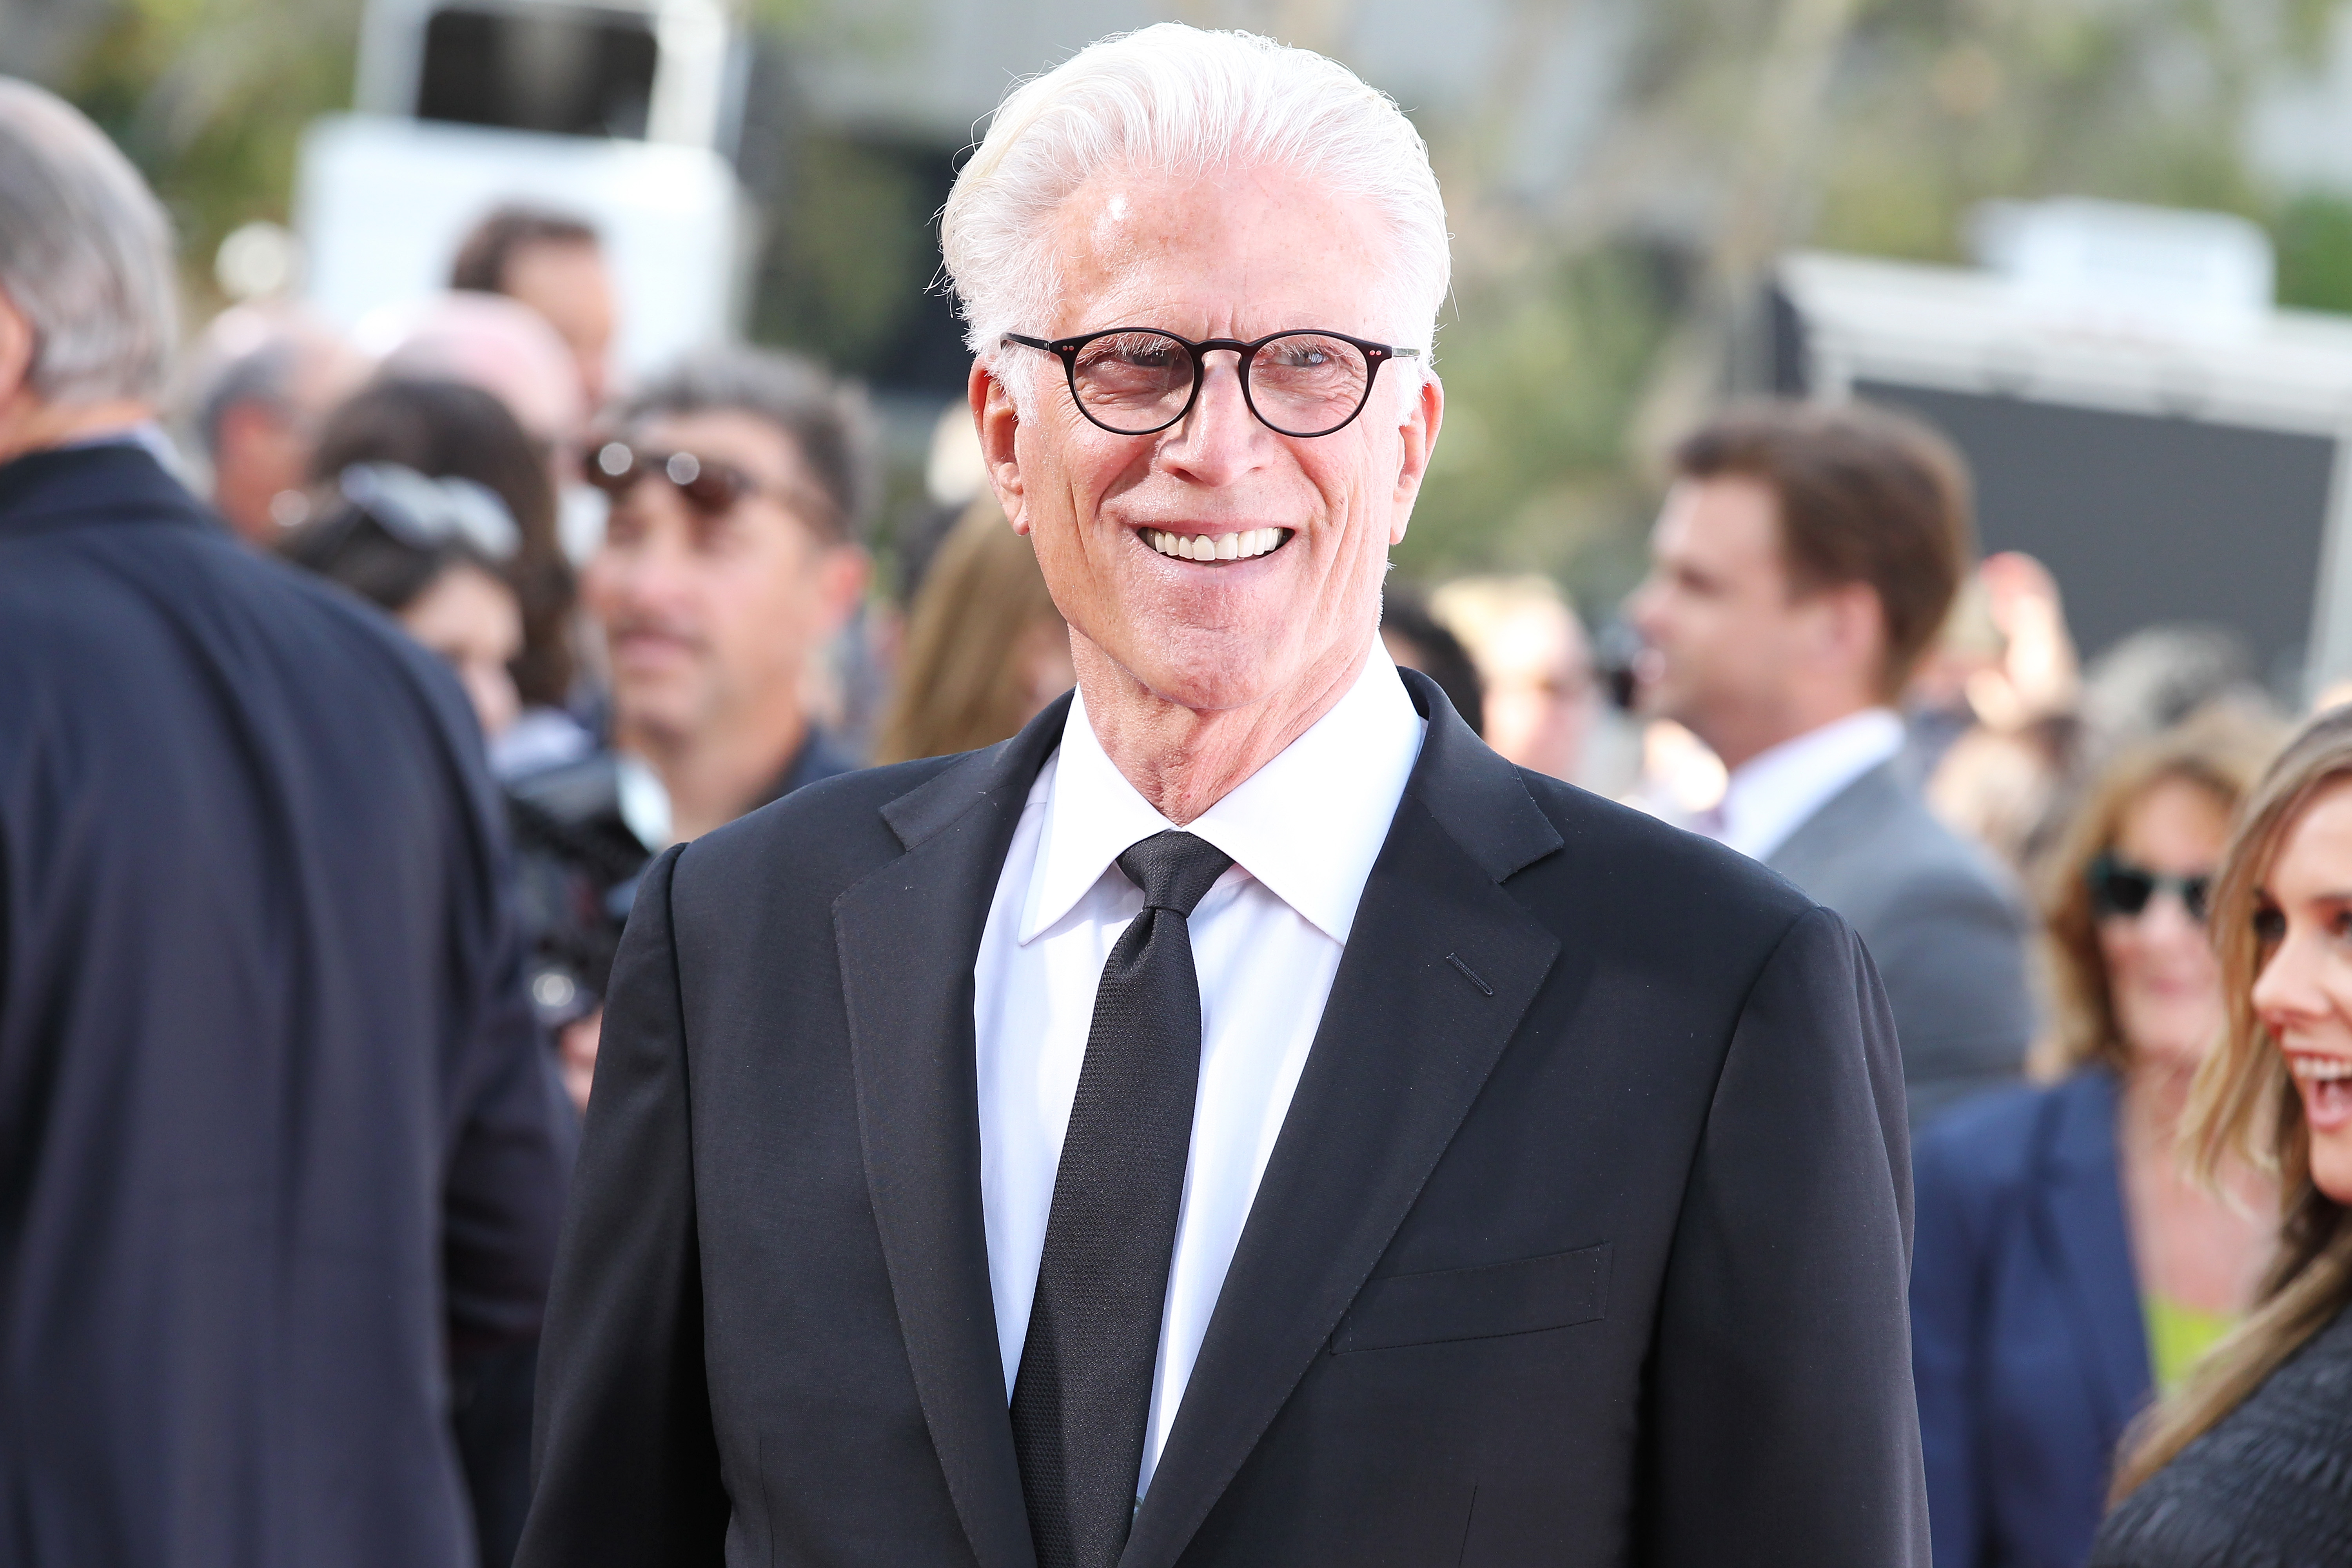 Ted Danson Gushes About His Career, Marriage and Family: 'My Life Is Brilliant!' (Exclusive)